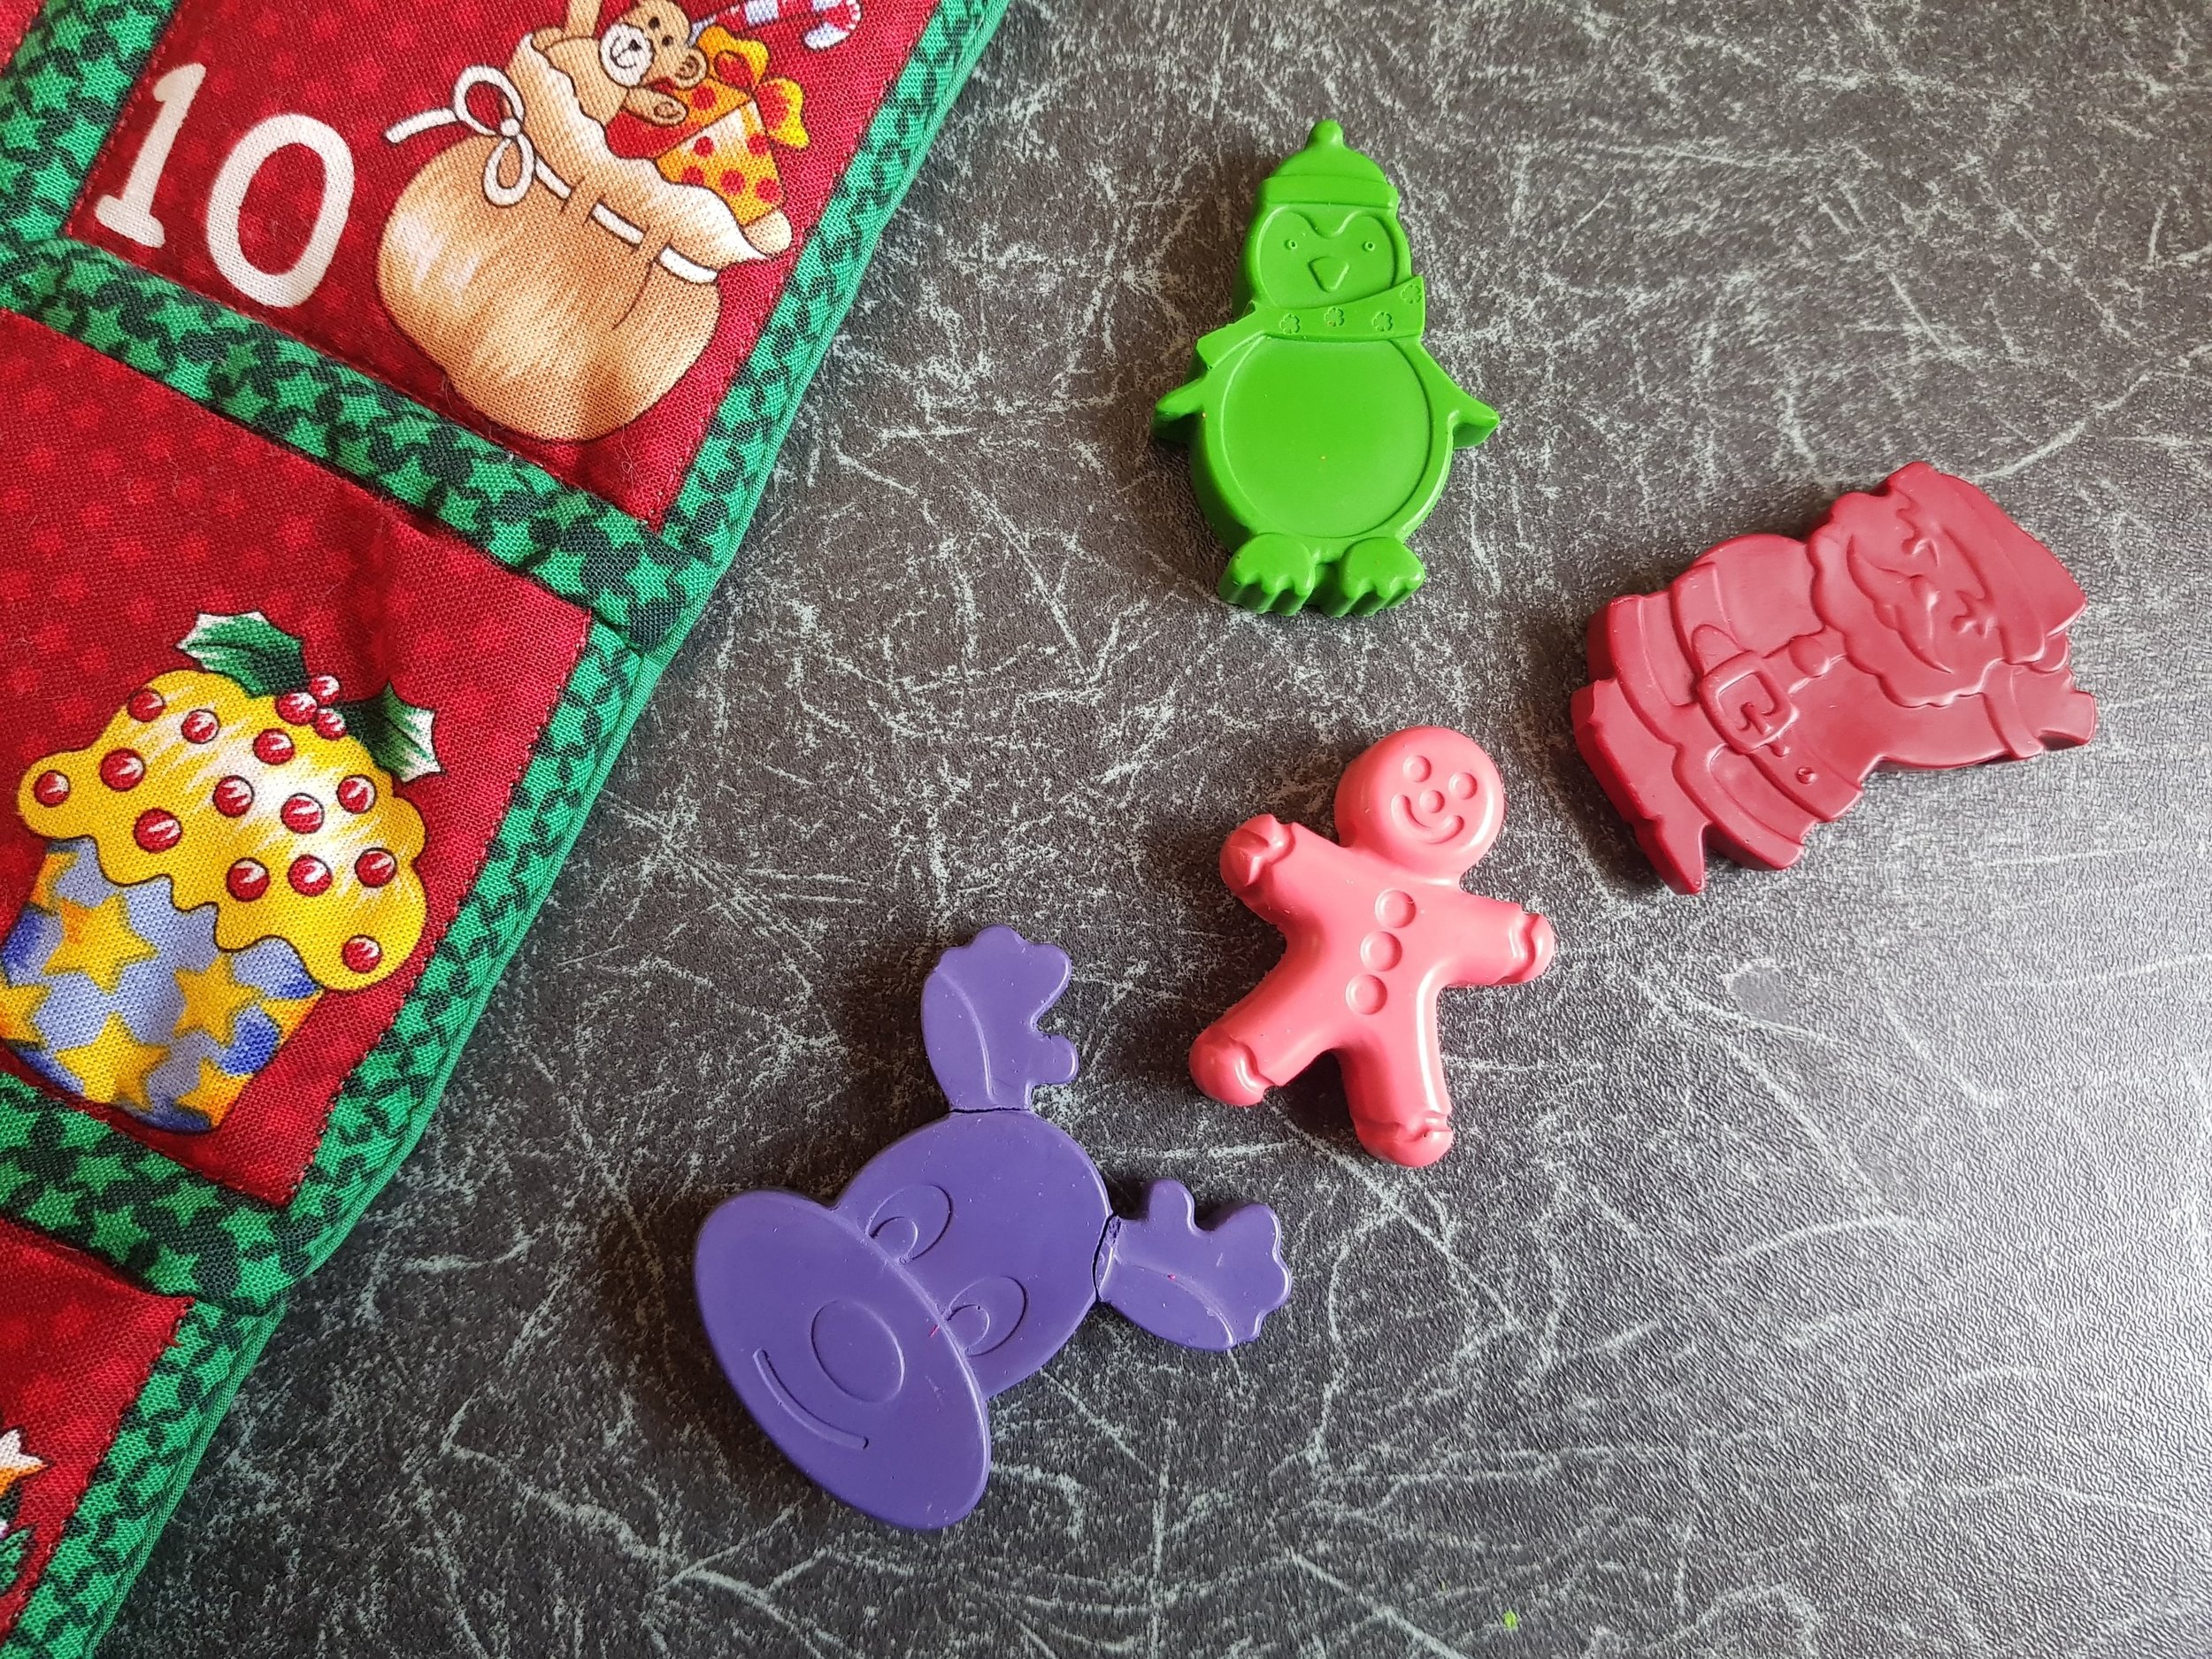 Fun Little Creations Christmas crayons